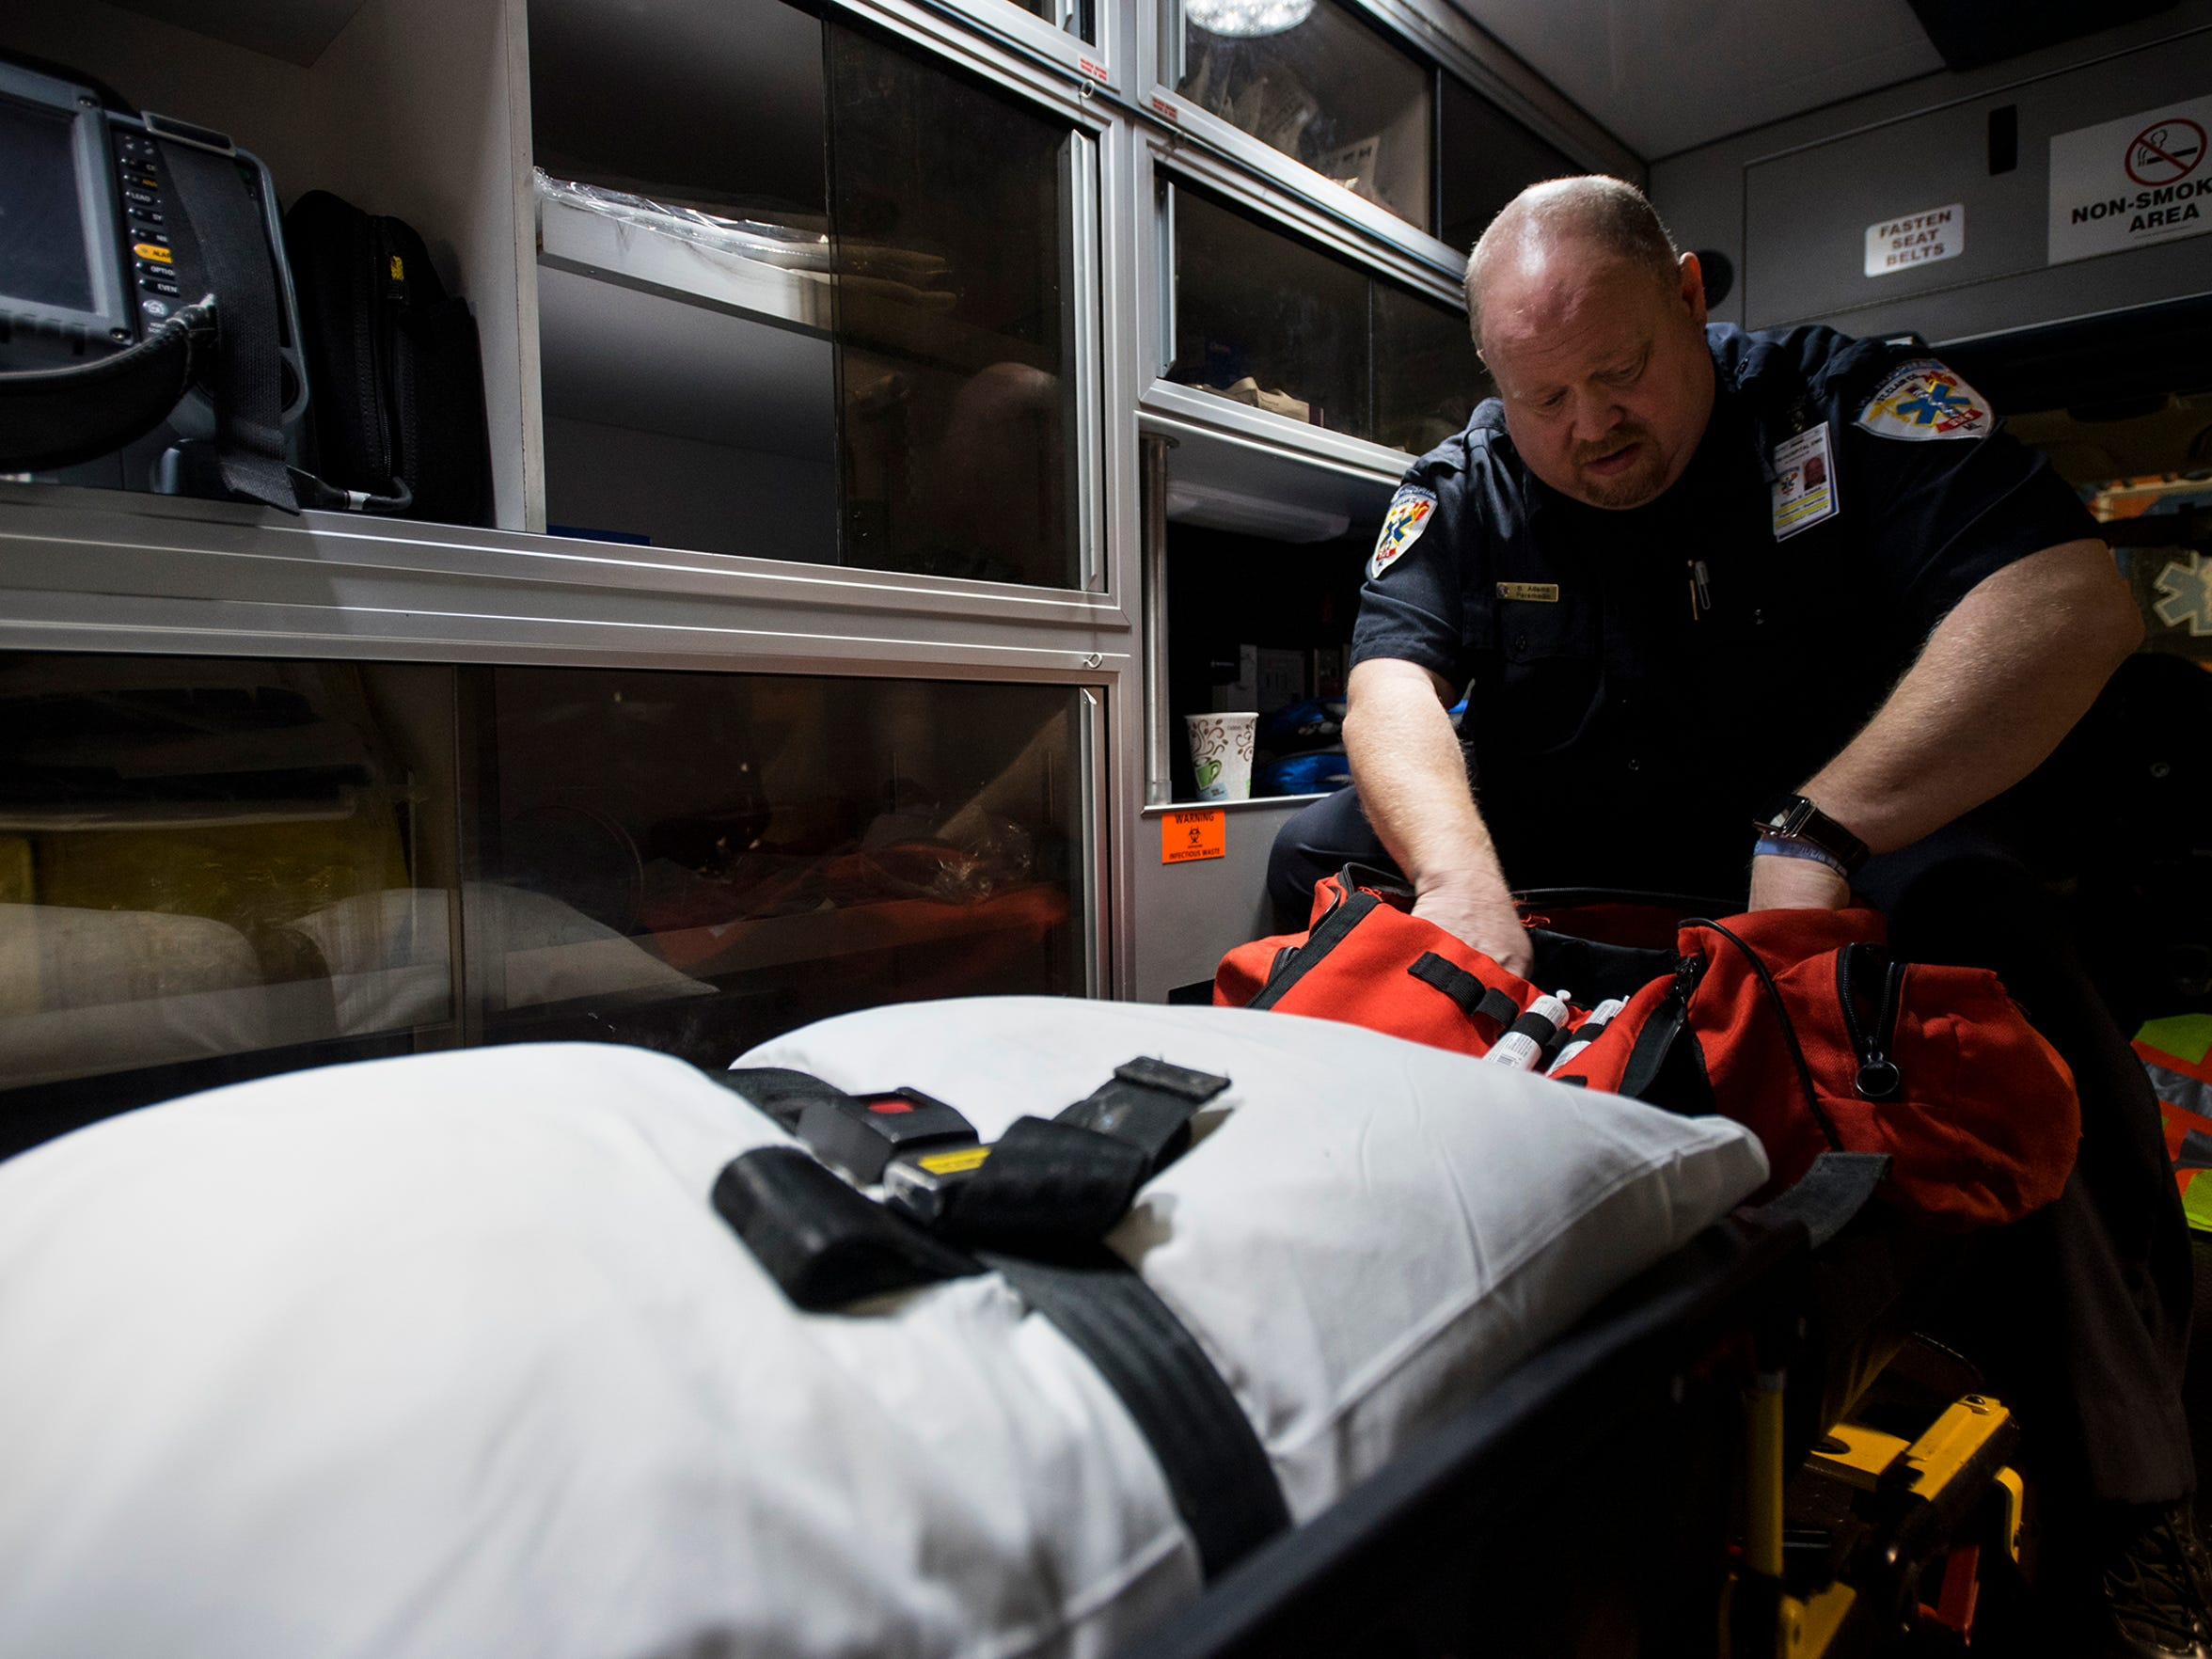 Tri-Hospital EMS Paramedic Supervisor Bill Adams checks through a kit containing a laryngoscope in the back of an ambulance Jan. 18. Paramedics use a laryngoscope to help secure an airway in an overdose victim if Narcan doesn't work.